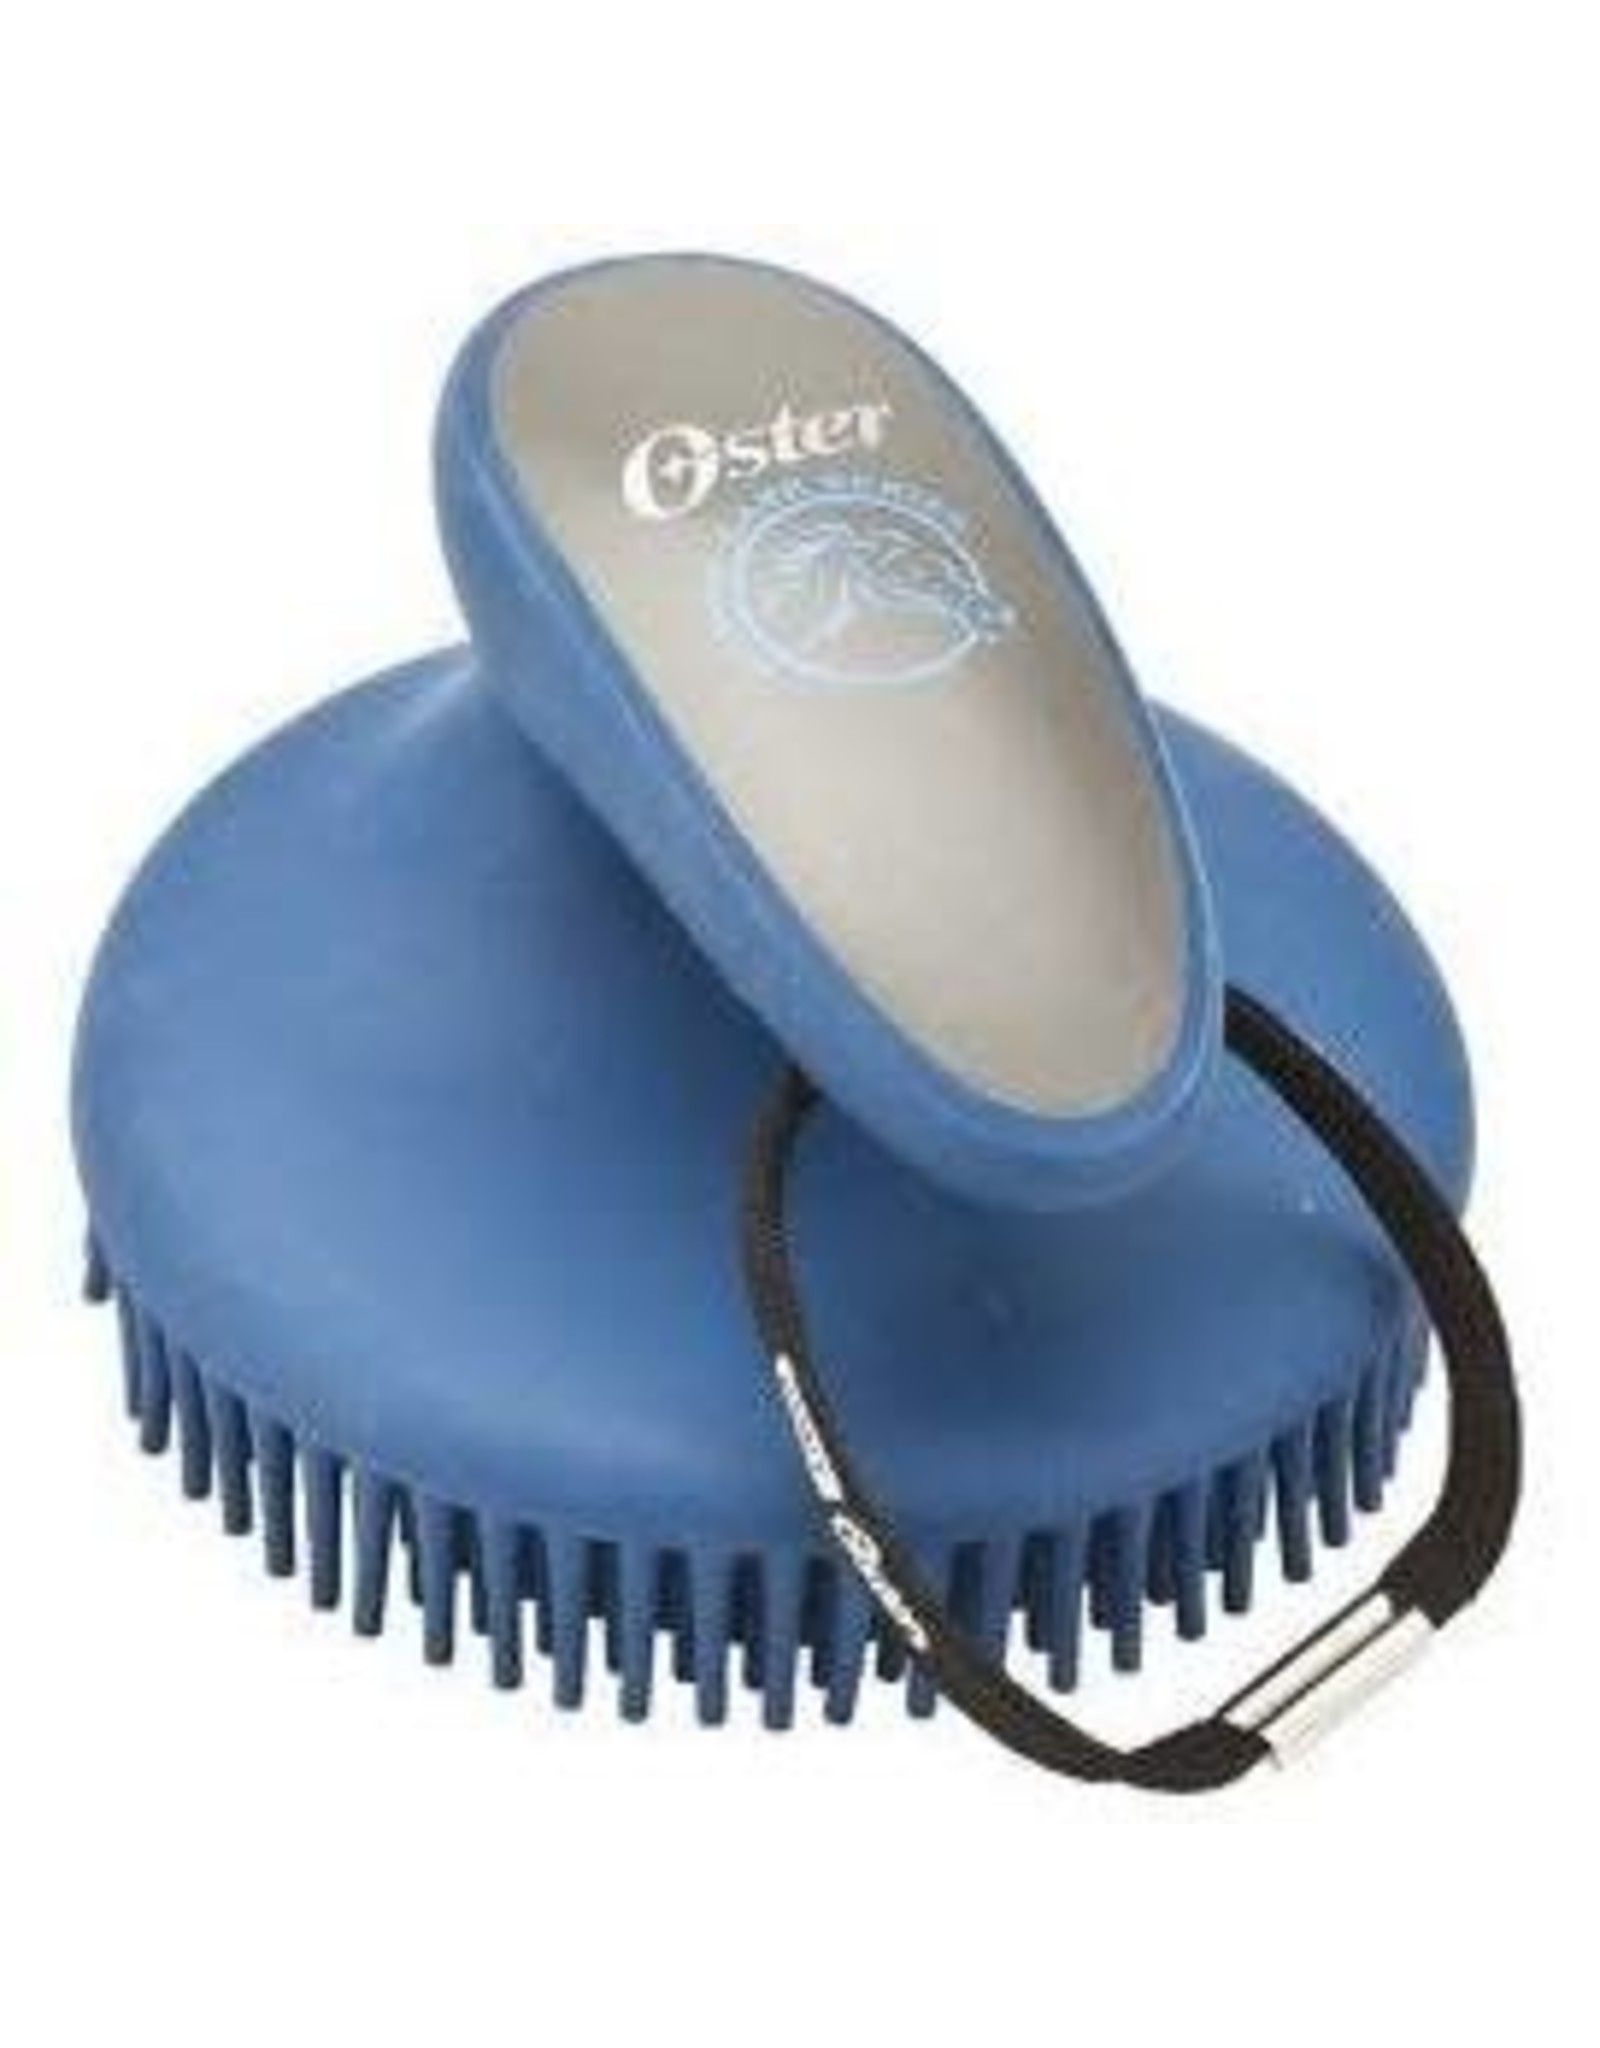 Oster Curry Comb, Oster, Rubber Blue